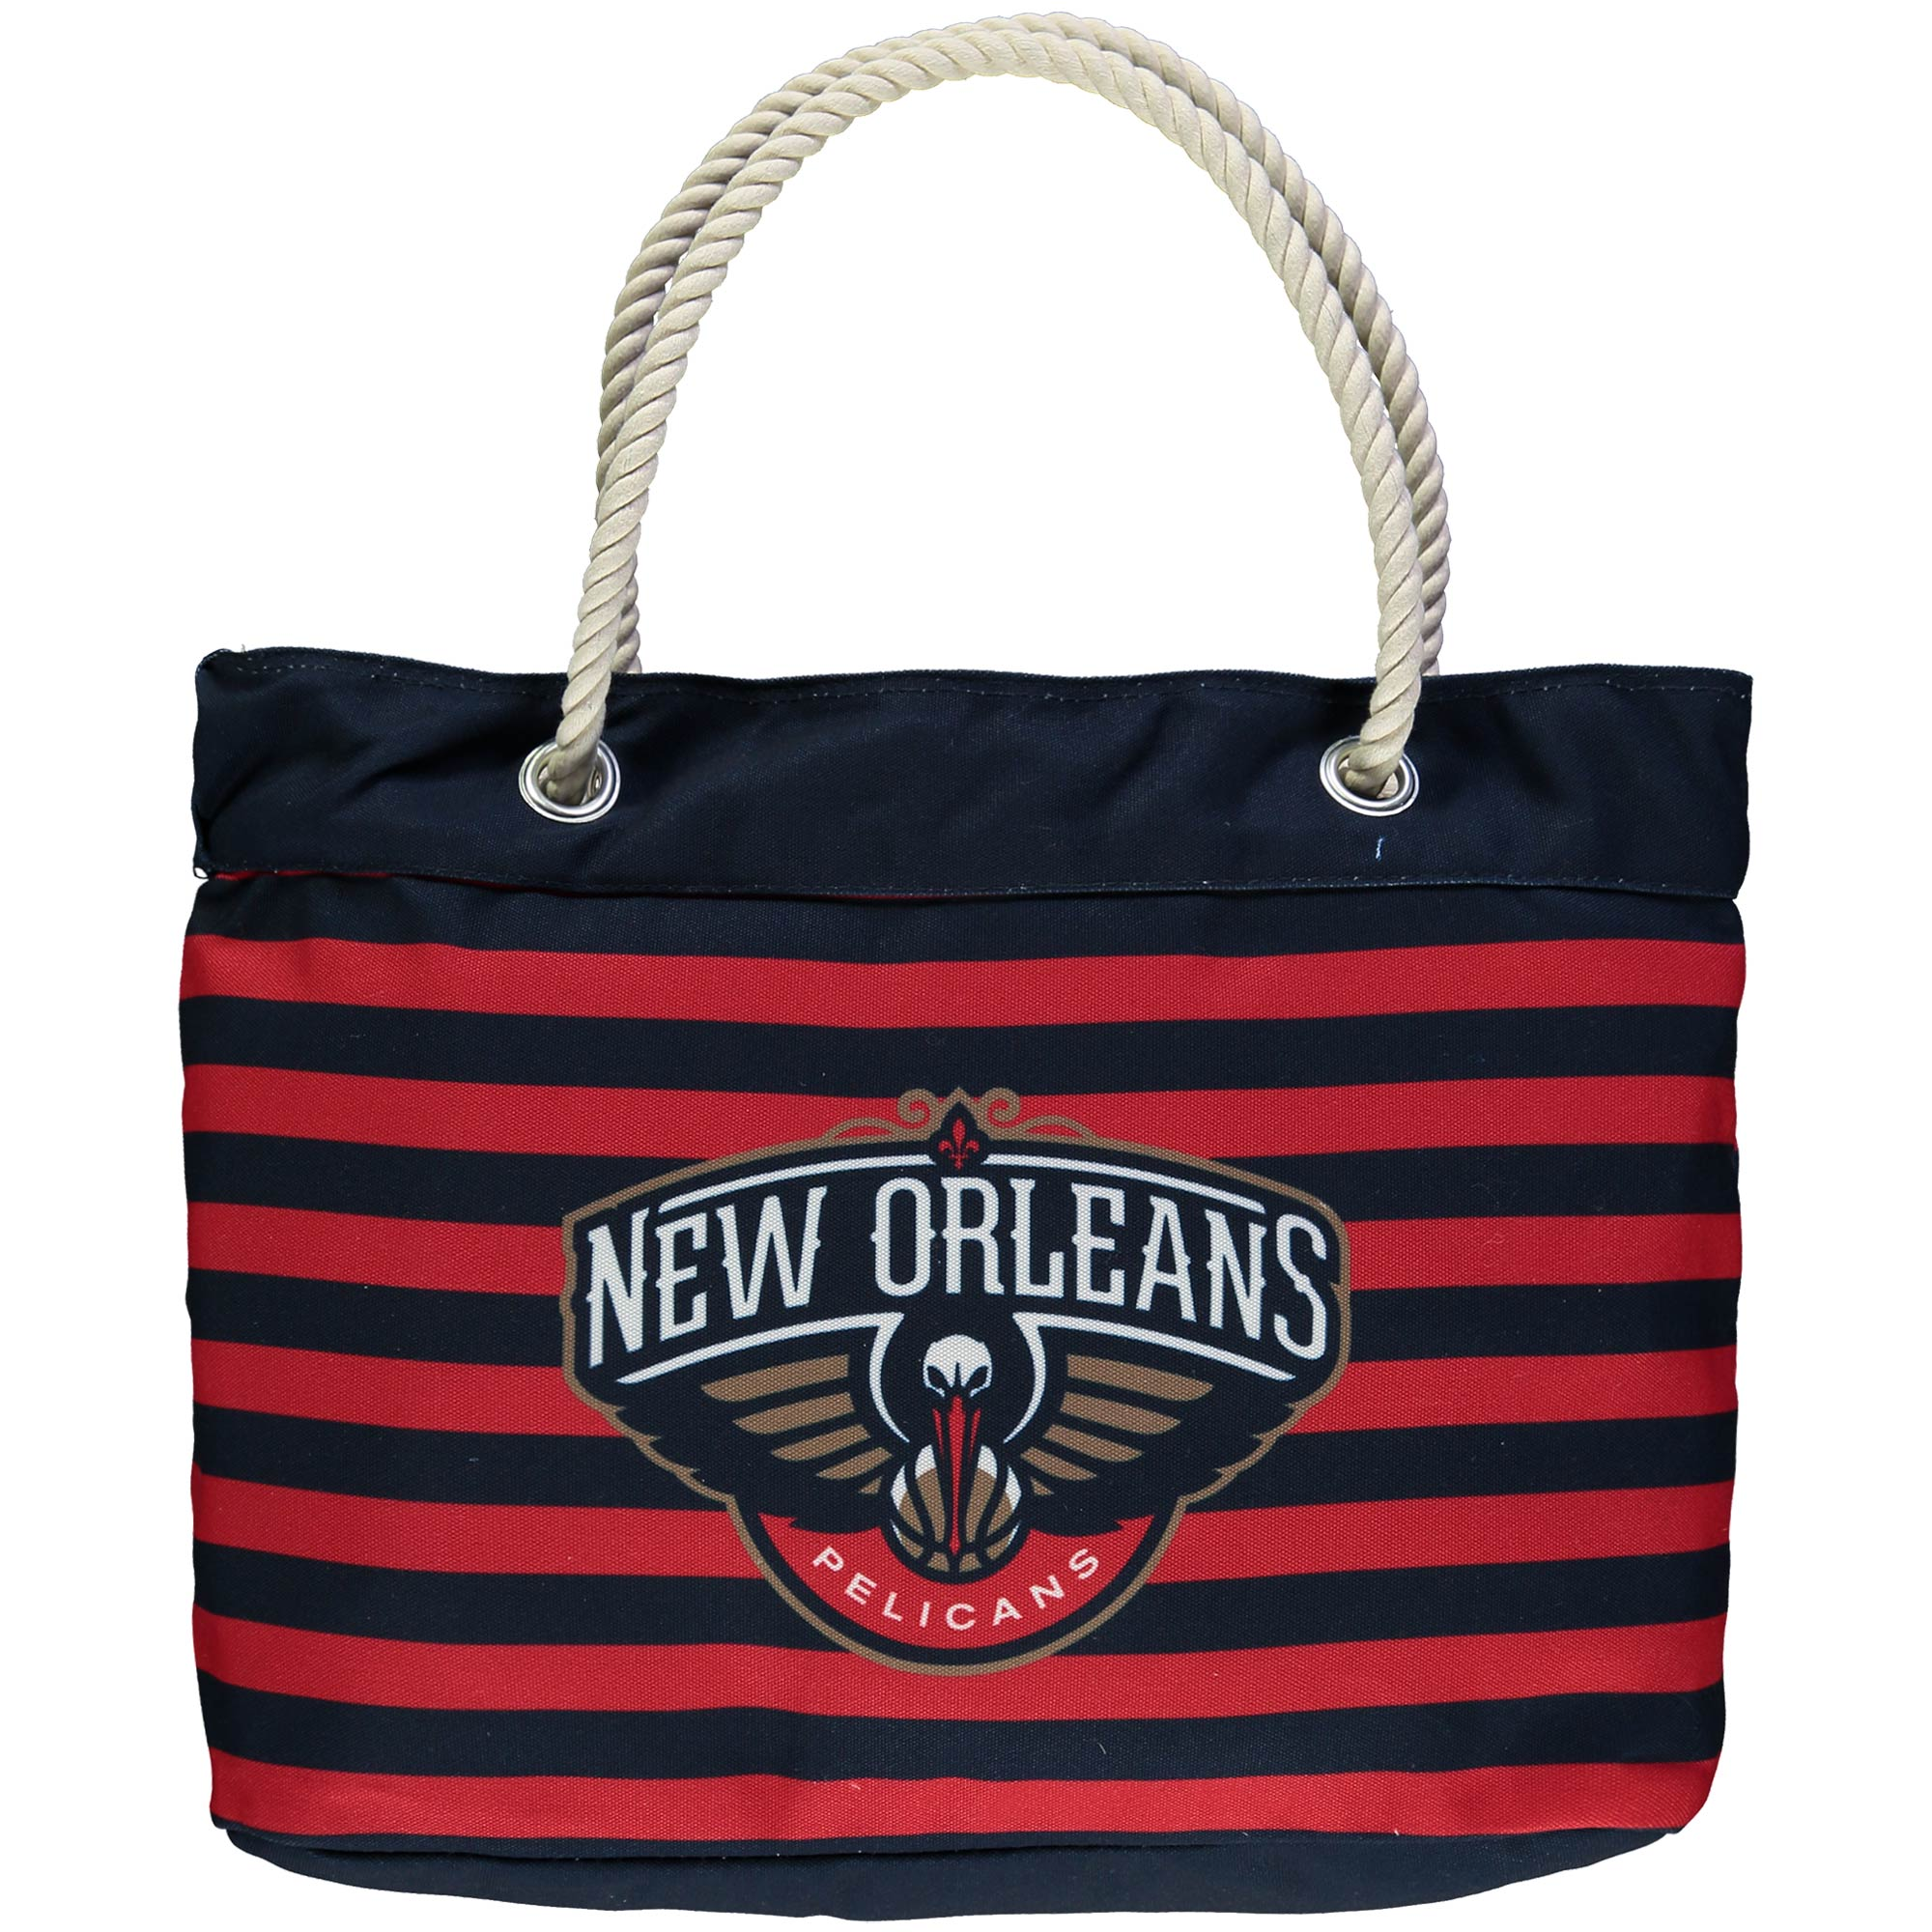 New Orleans Pelicans Nautical Stripe Tote